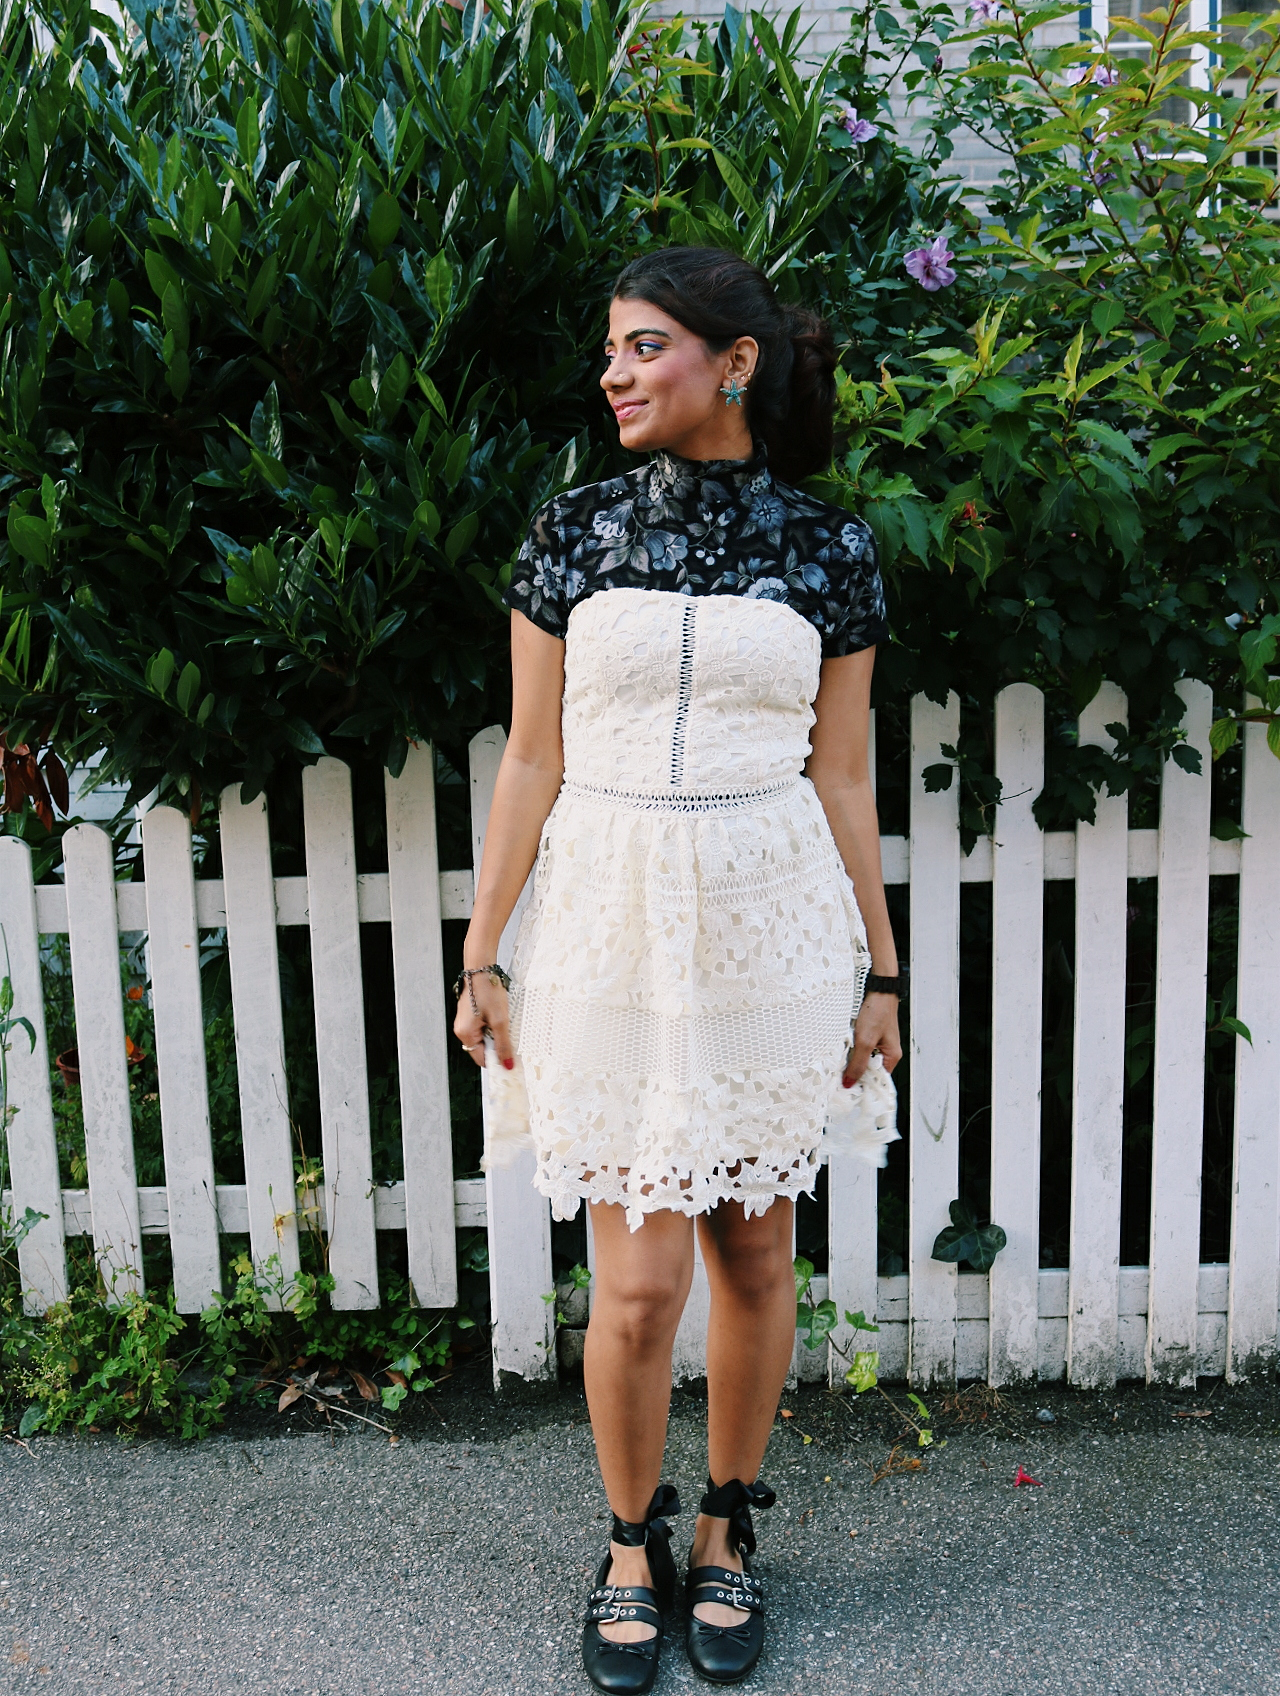 Turtleneck Lace Dress!